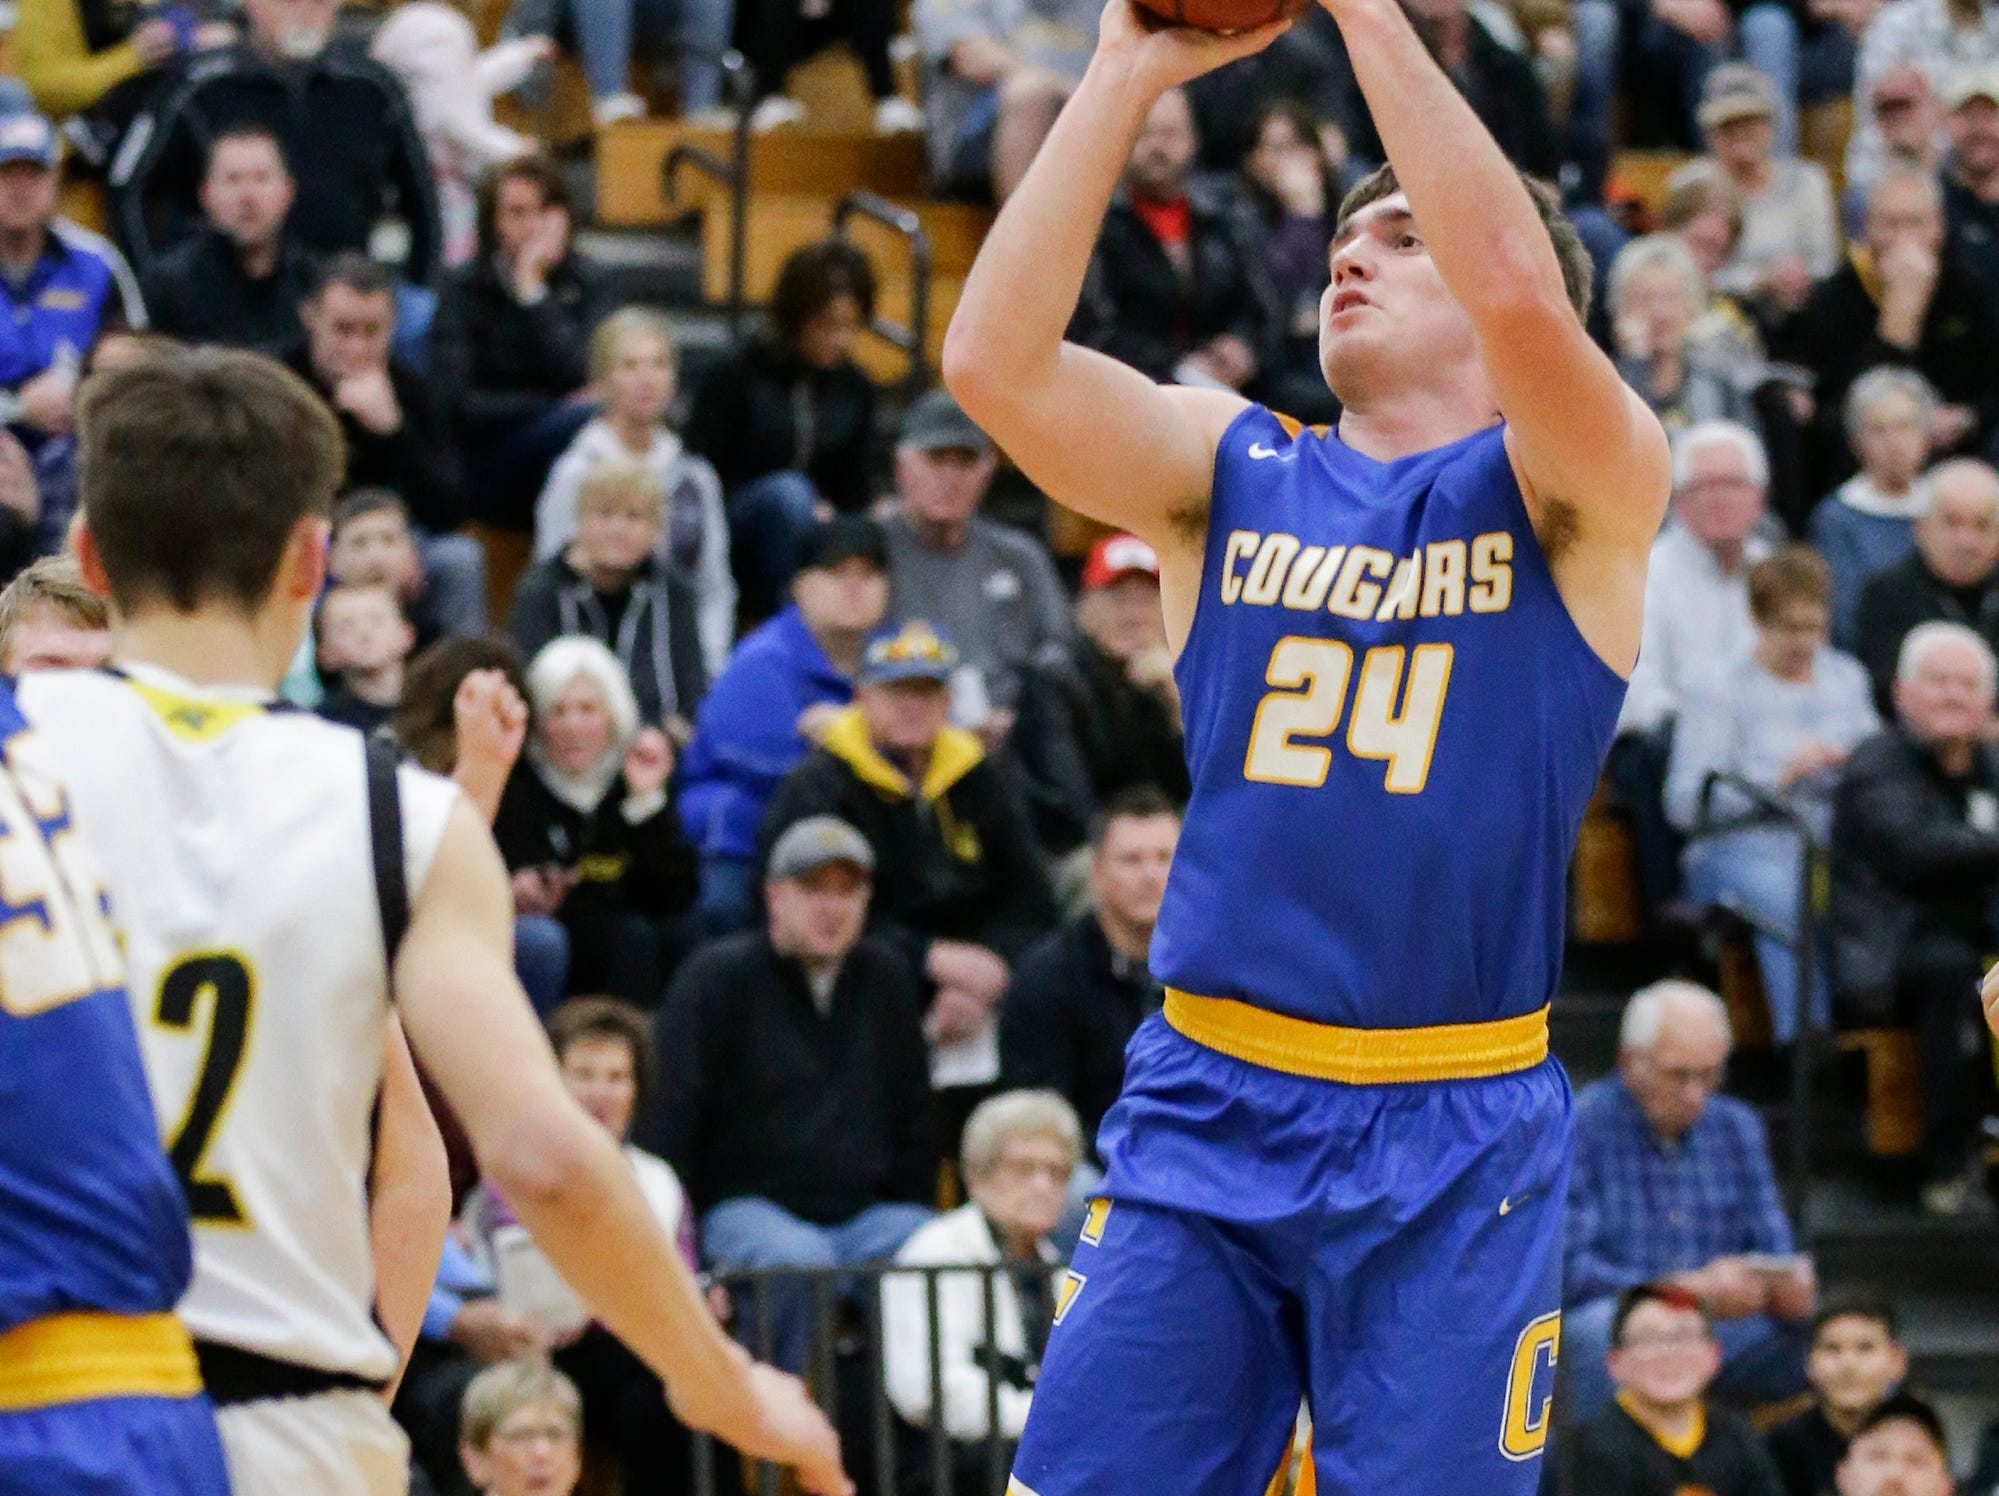 Campbellsport High School boys basketball's Nicholas Narges shoots a basket against Waupun High School during their game Friday, December 14, 2018 in Waupun. Waupun won the game 64-33. Doug Raflik/USA TODAY NETWORK-Wisconsin